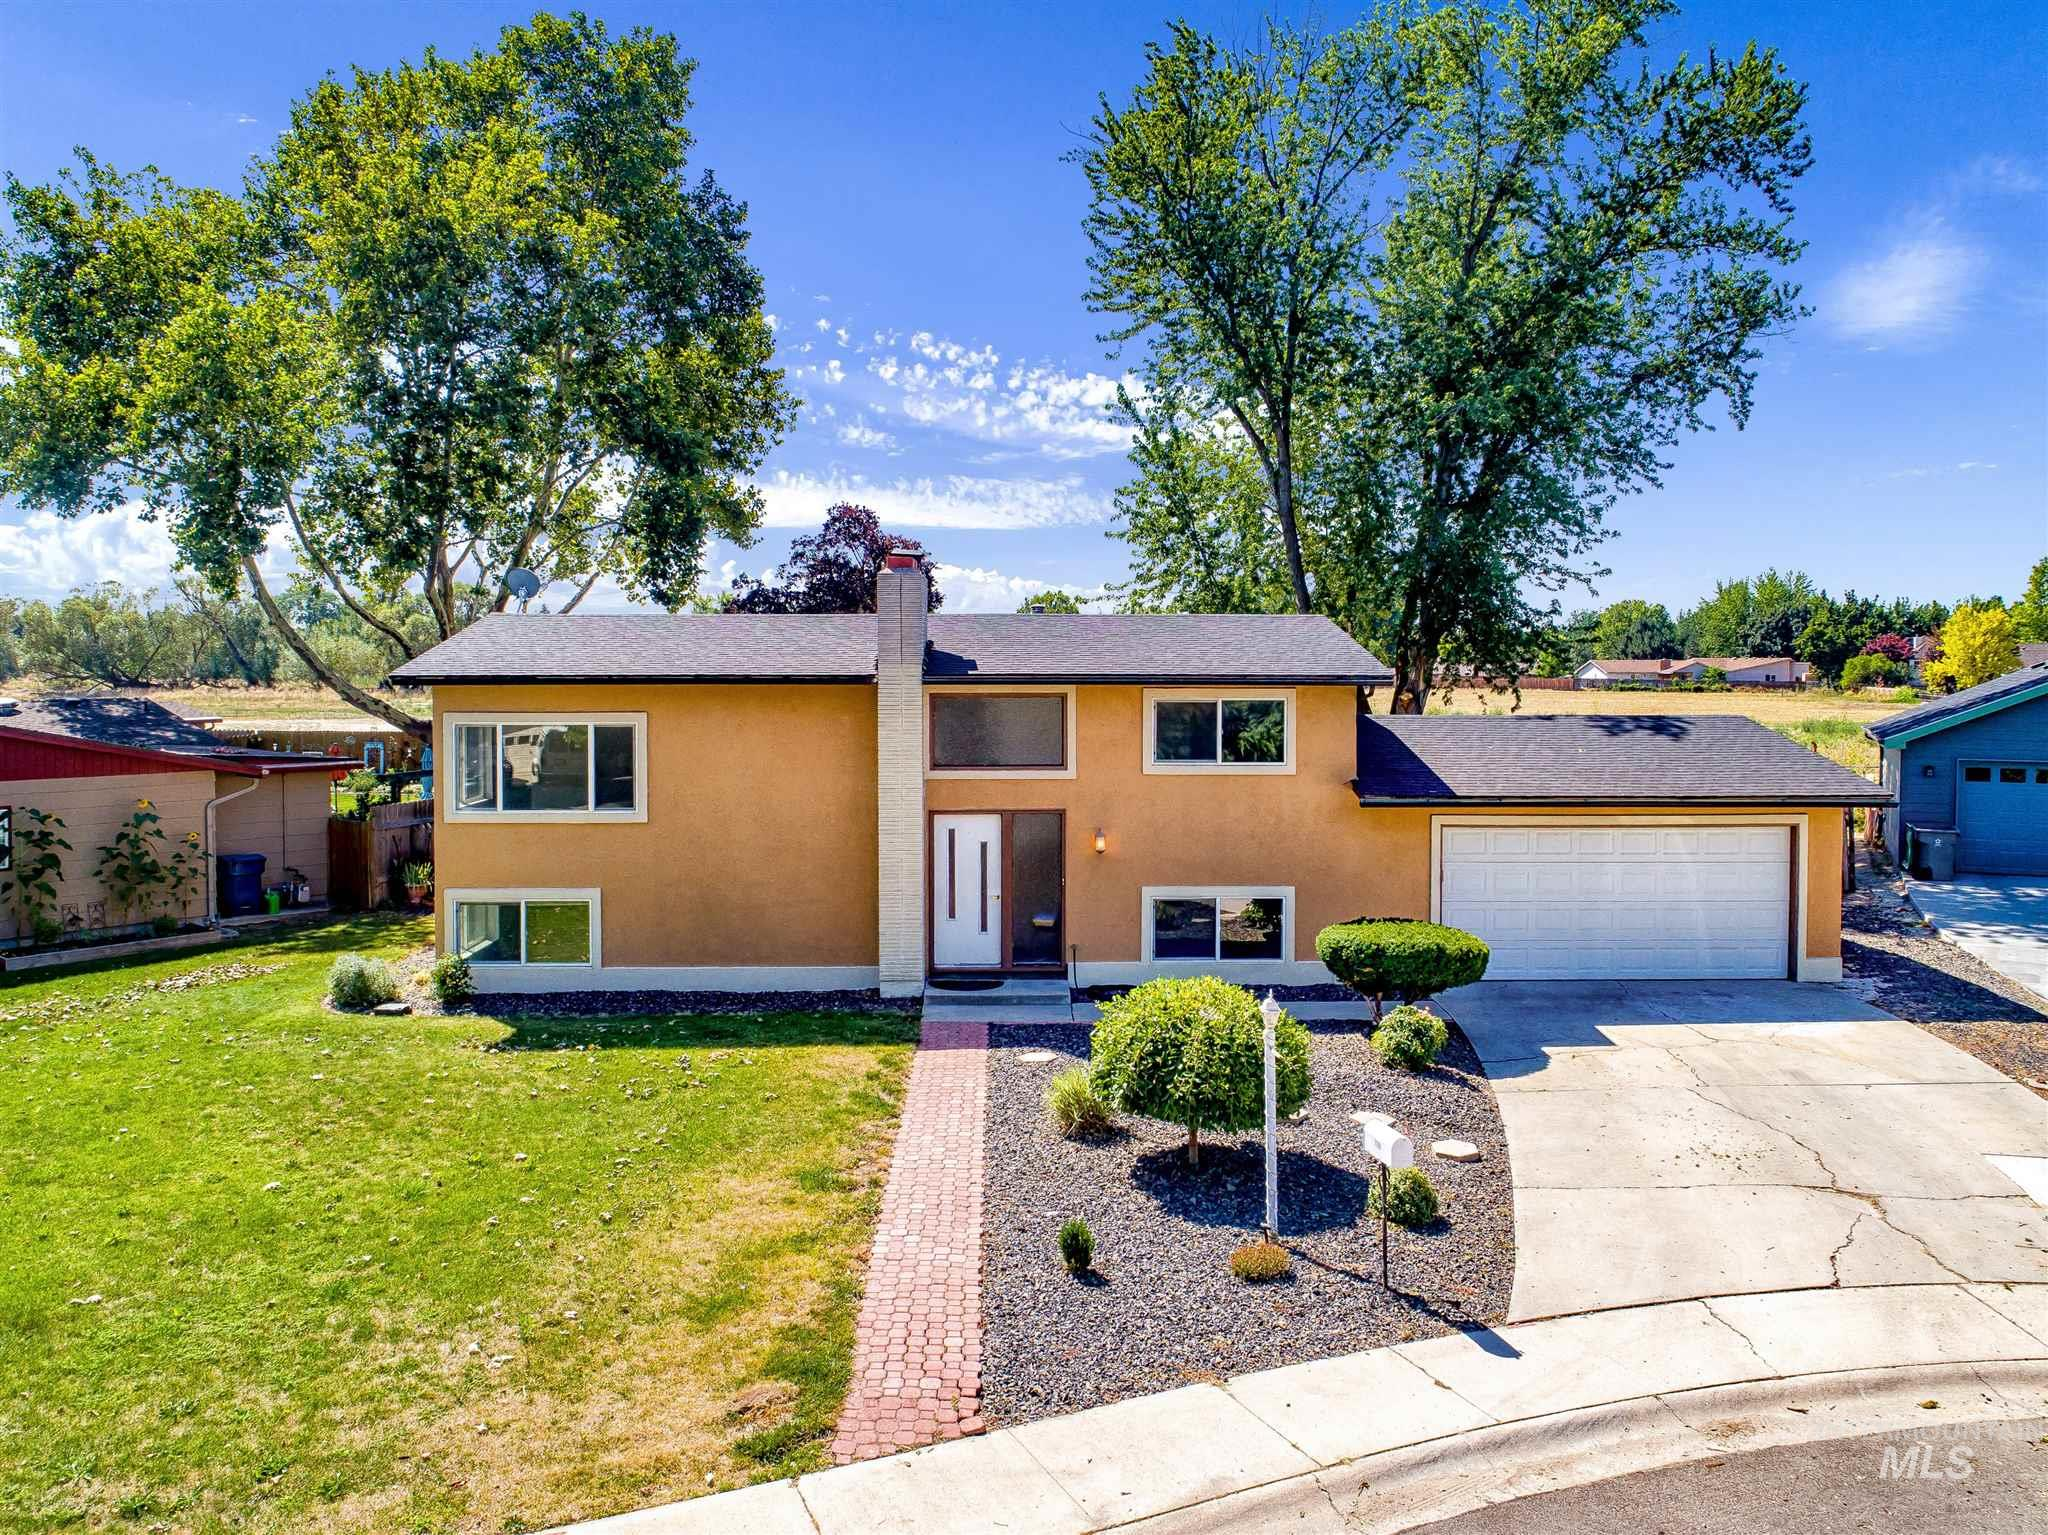 Photo for 7755 Bridlewood, Boise, ID 83704 (MLS # 98775764)